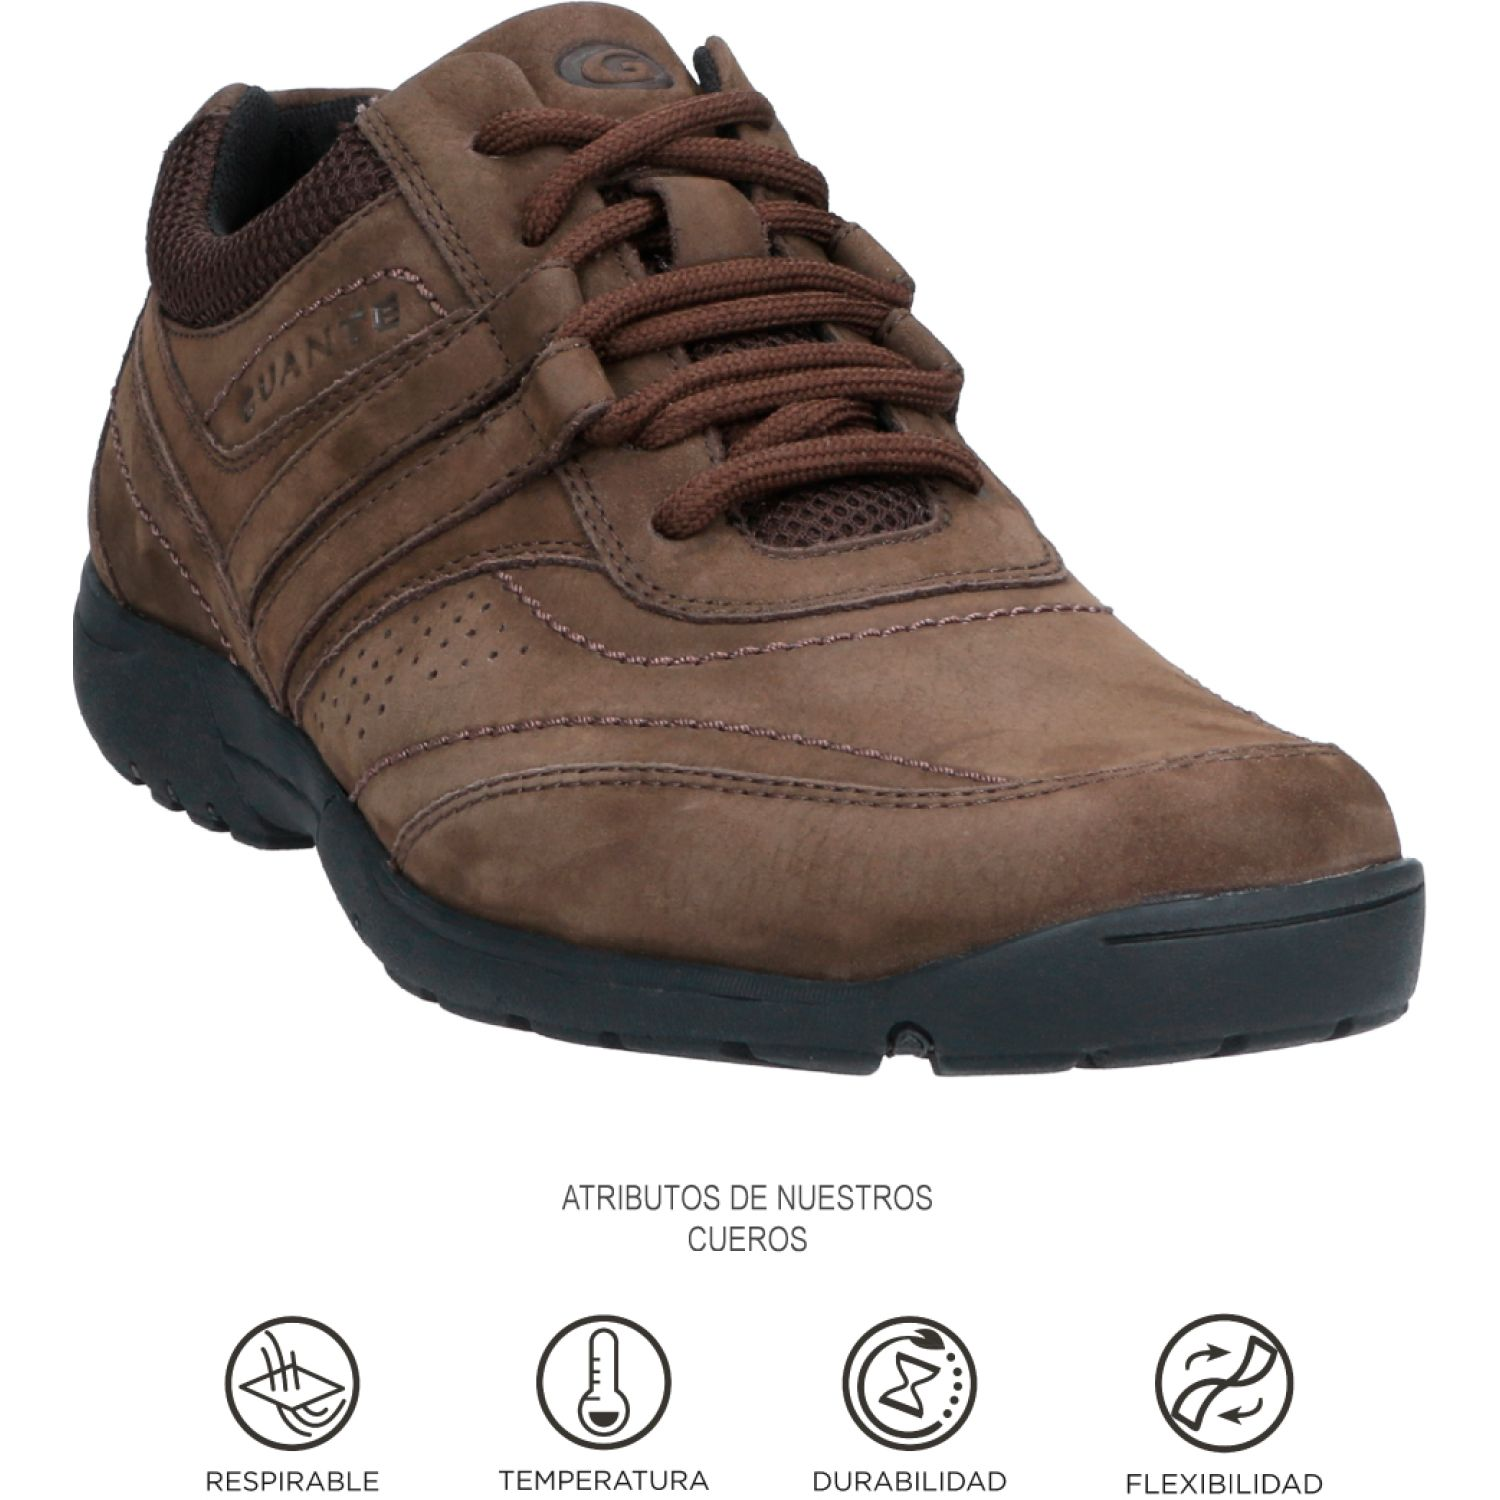 GUANTE Vancouver Chocolate Oxfords